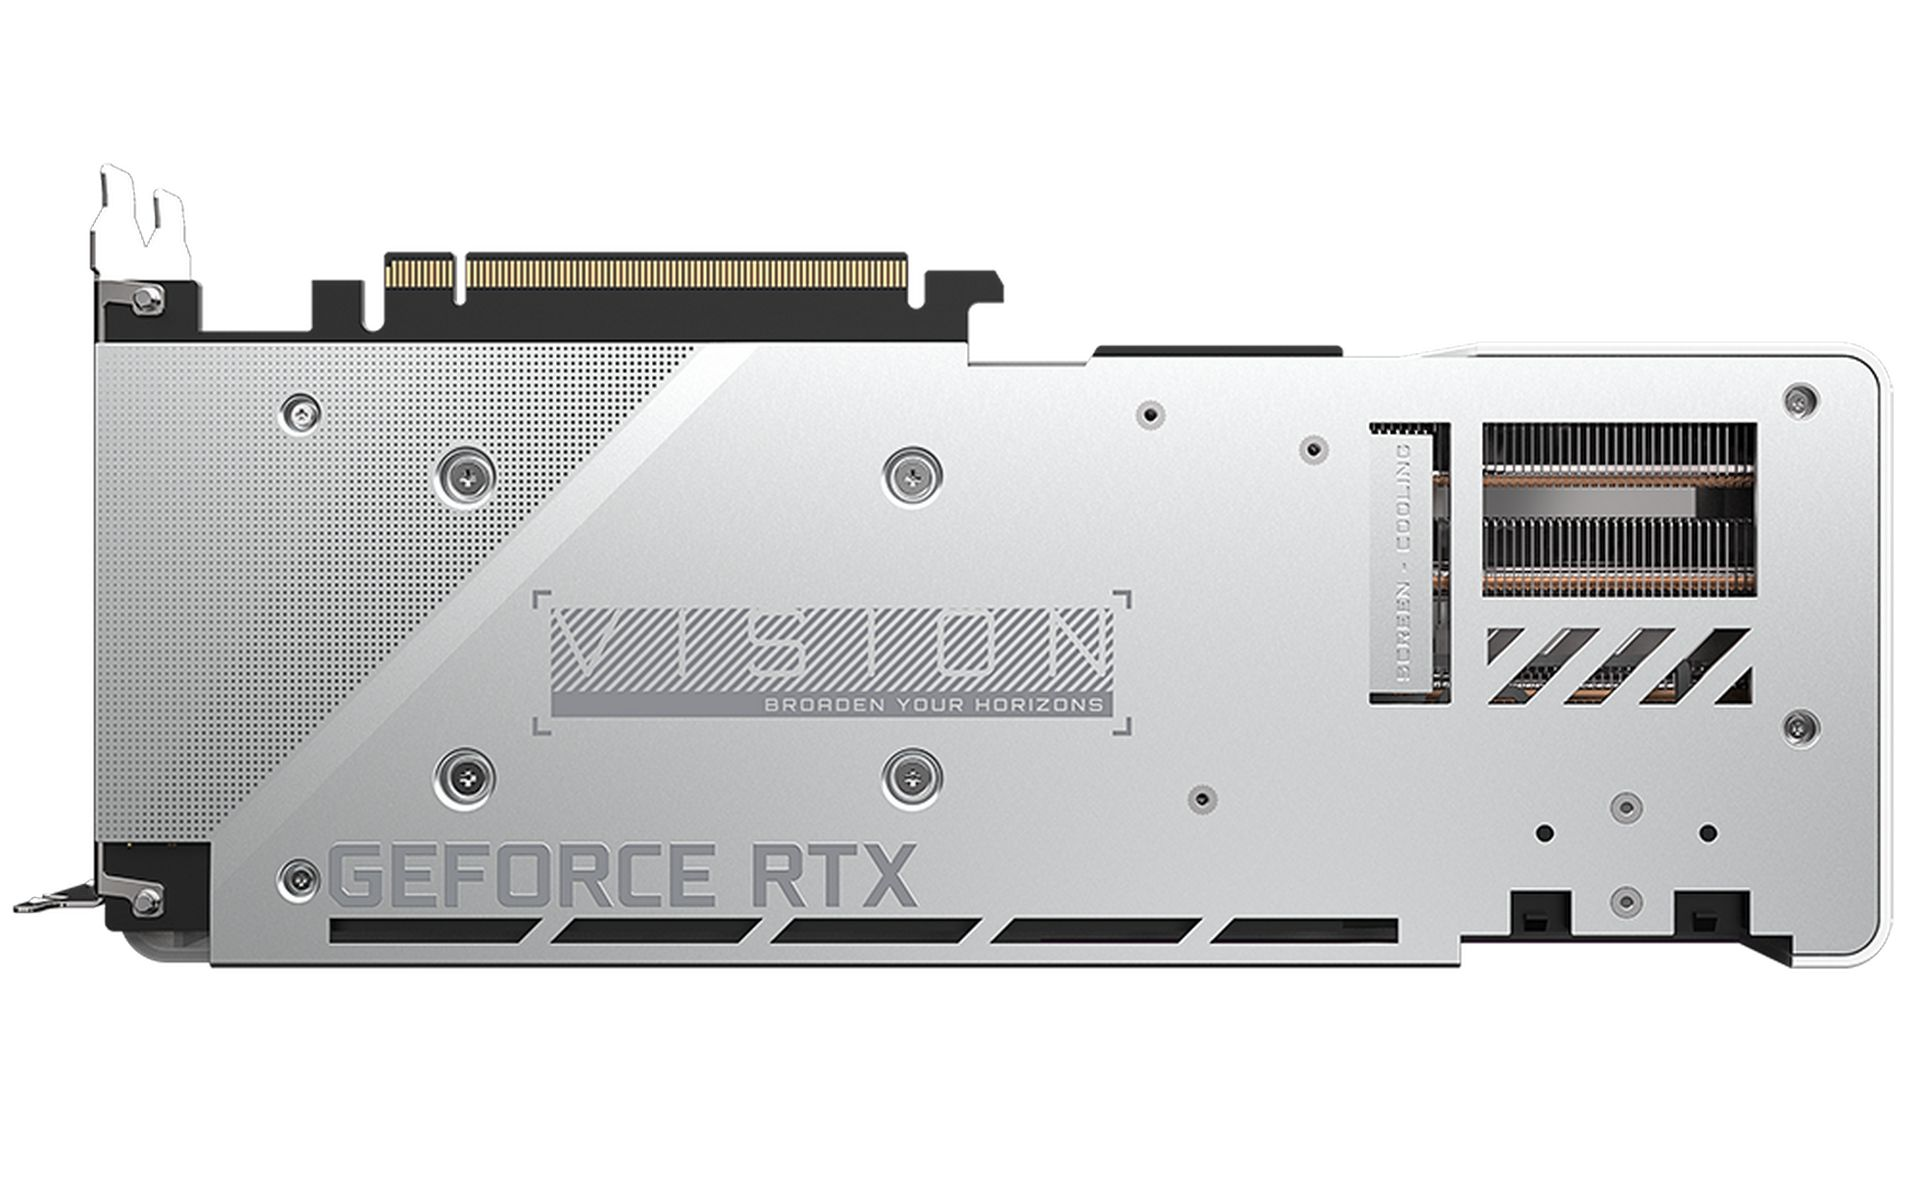 GeForce RTX 3070 VISION OC 8G back